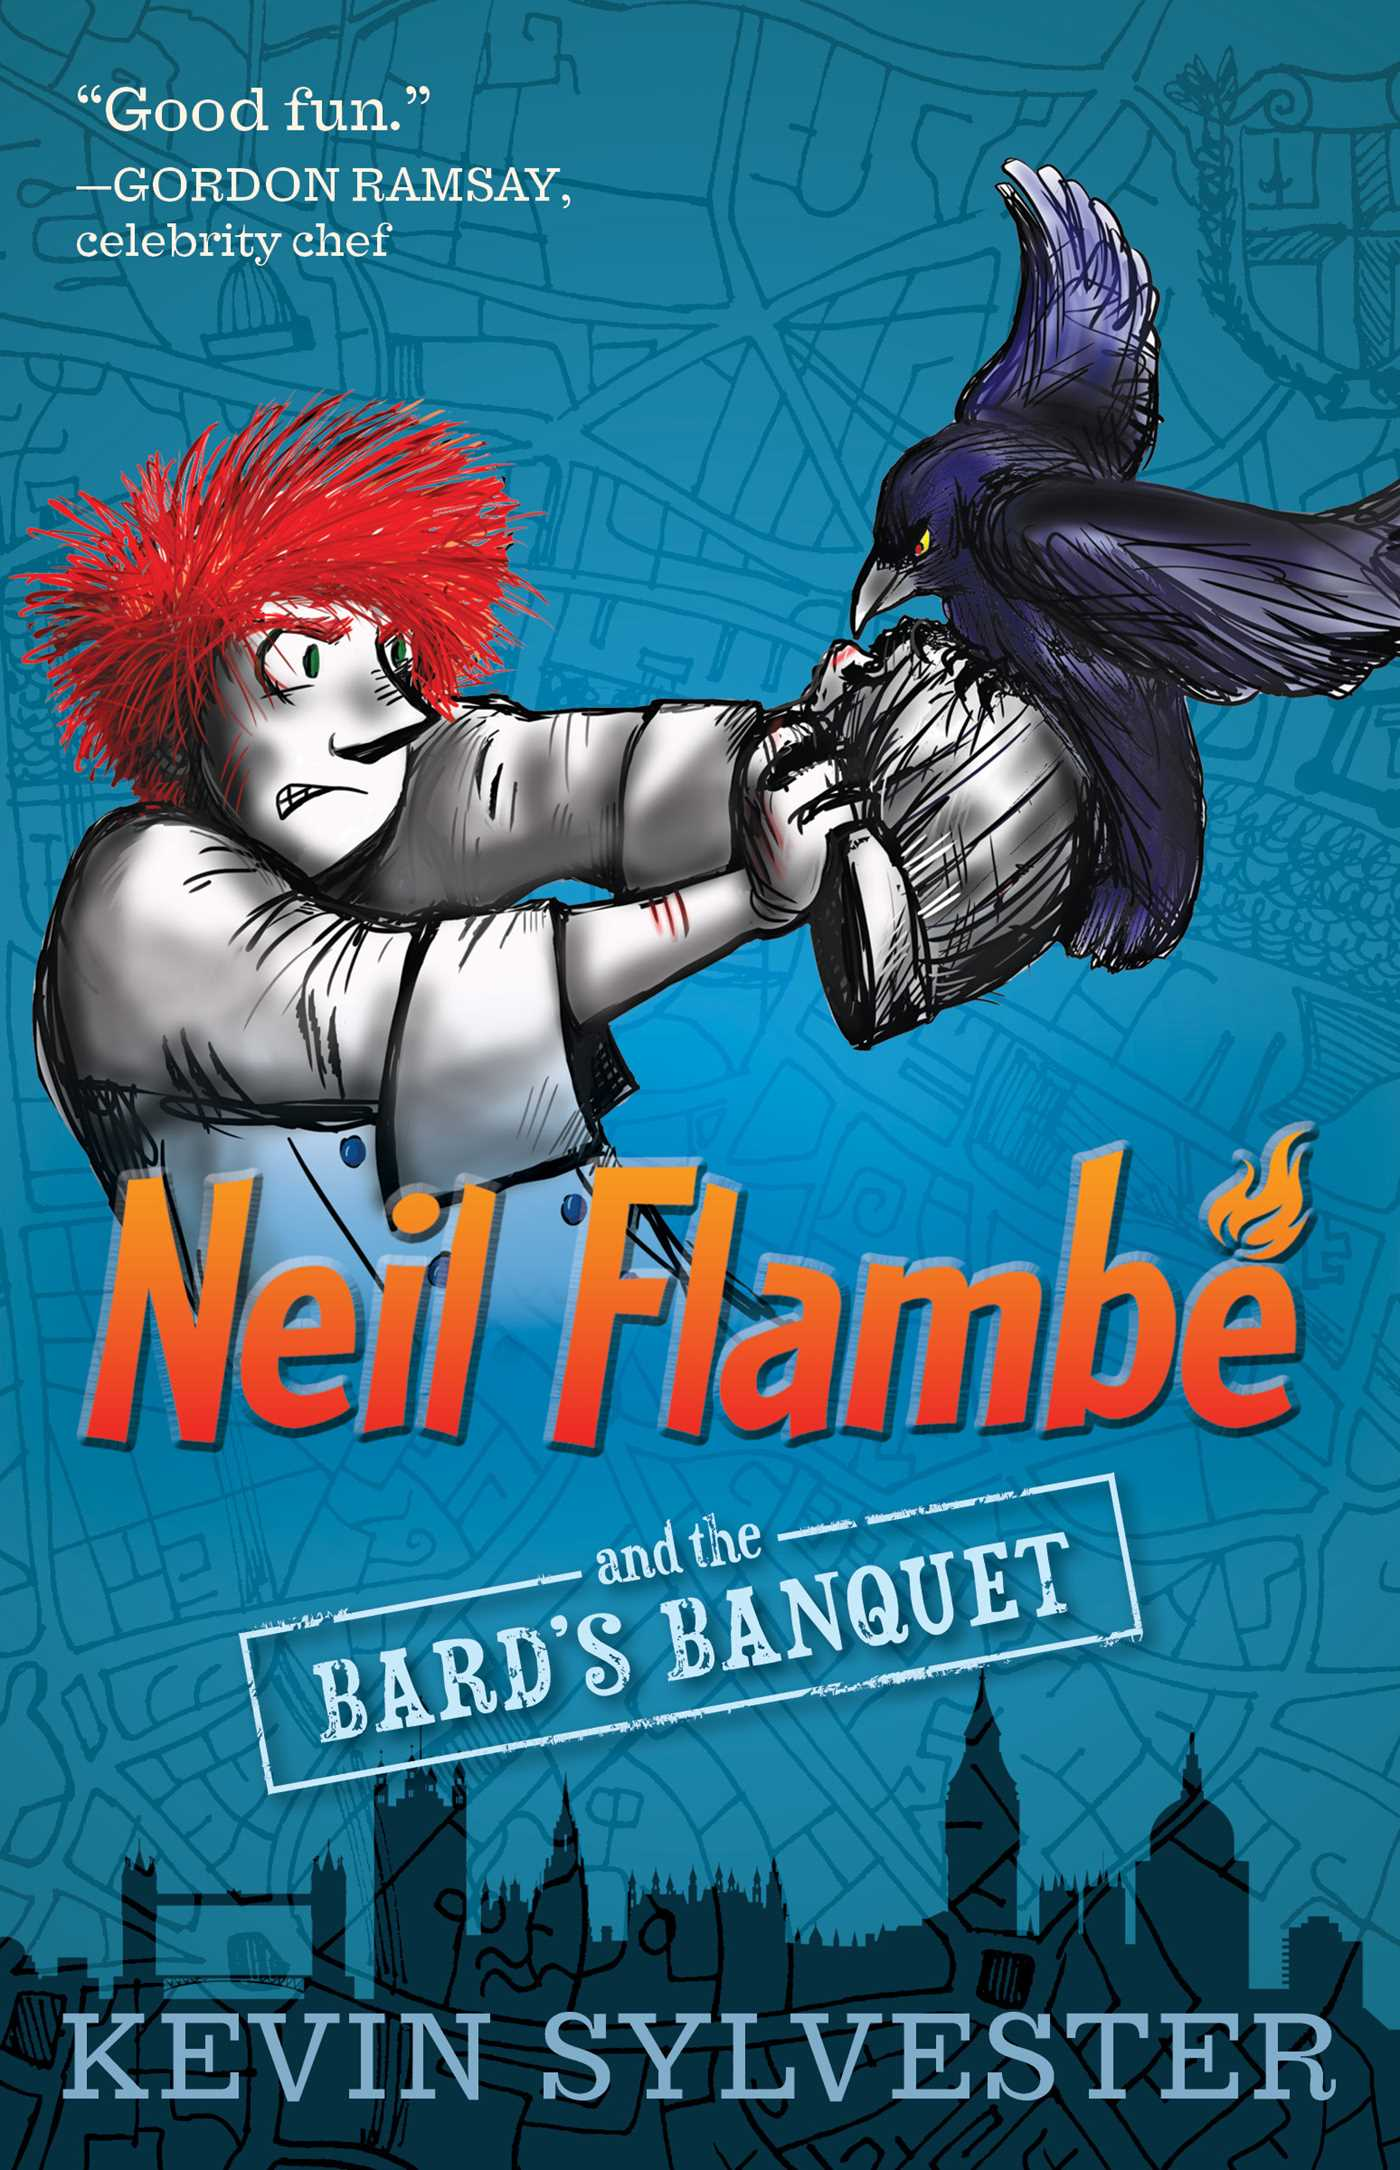 Neil flambe and the bards banquet 9781481410397 hr